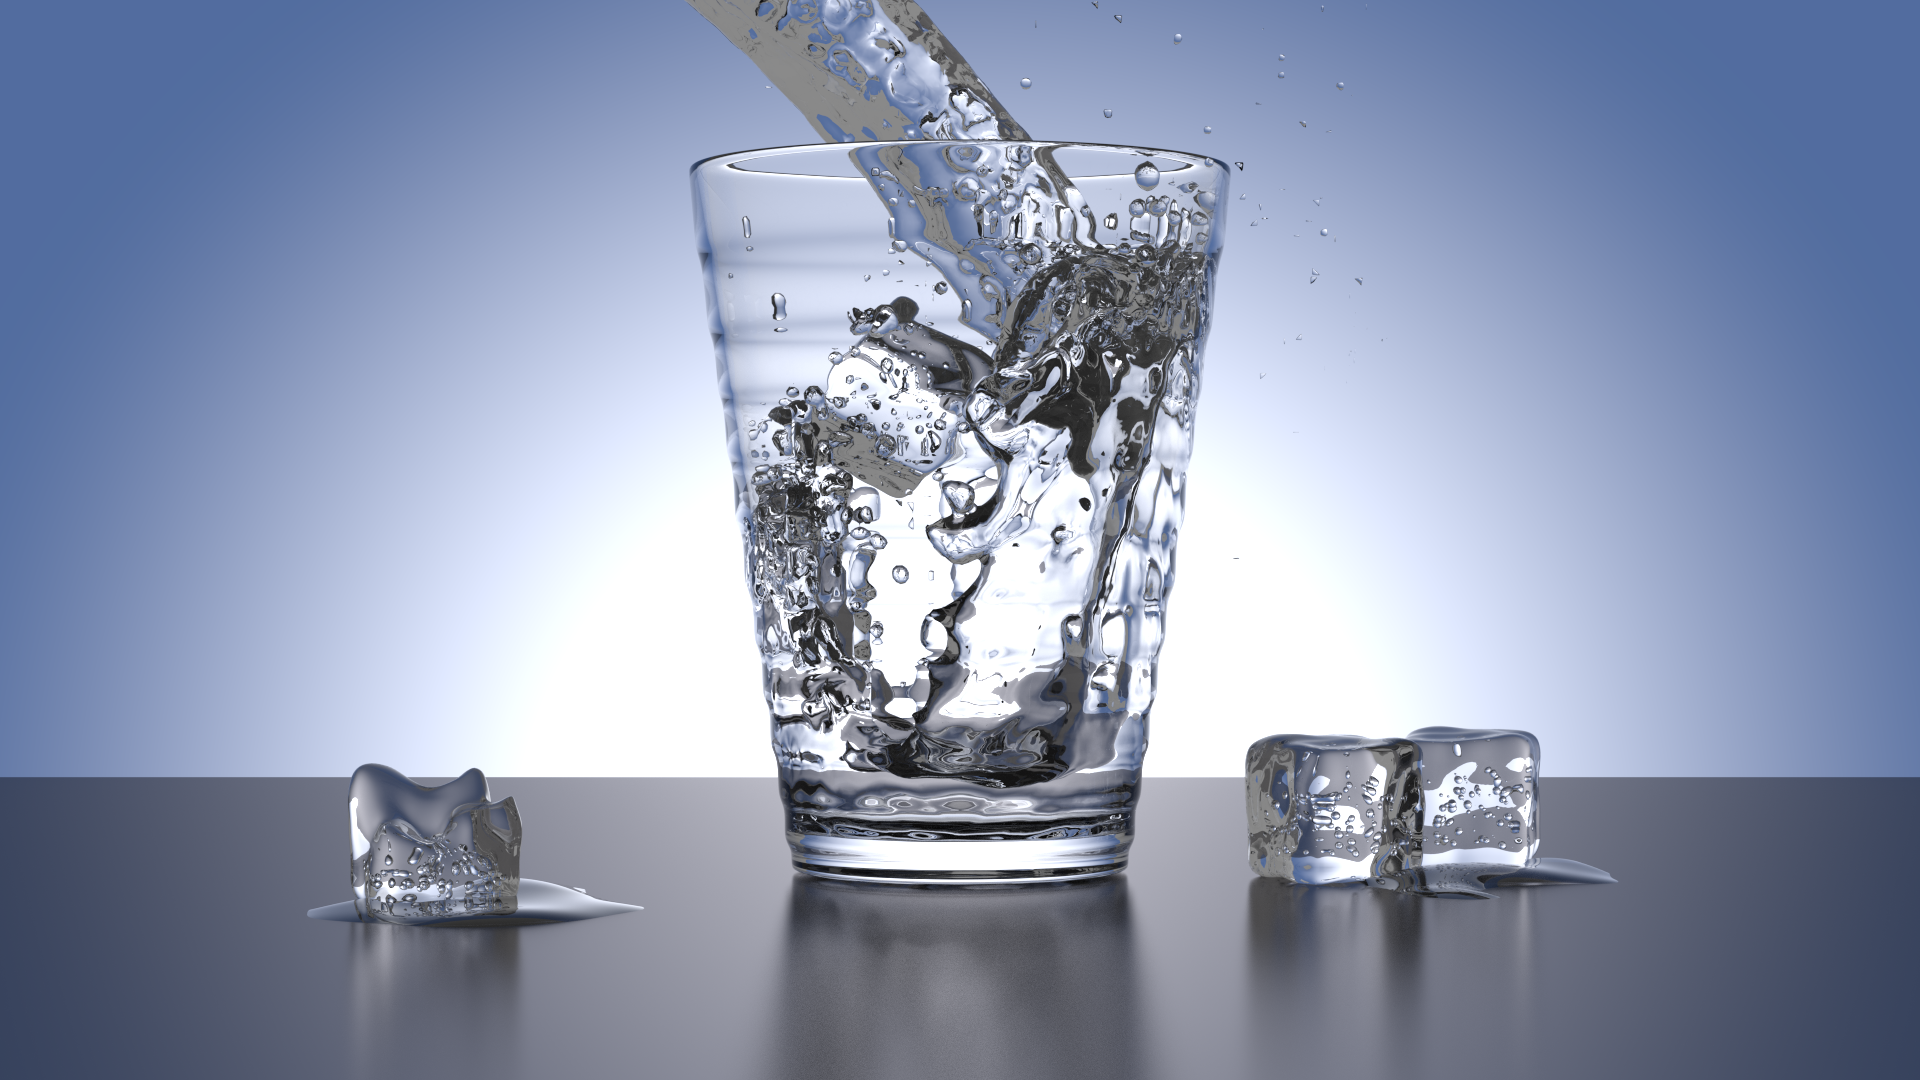 Water Glass Hd Png Transparent Water Glass Hd Png Images Pluspng